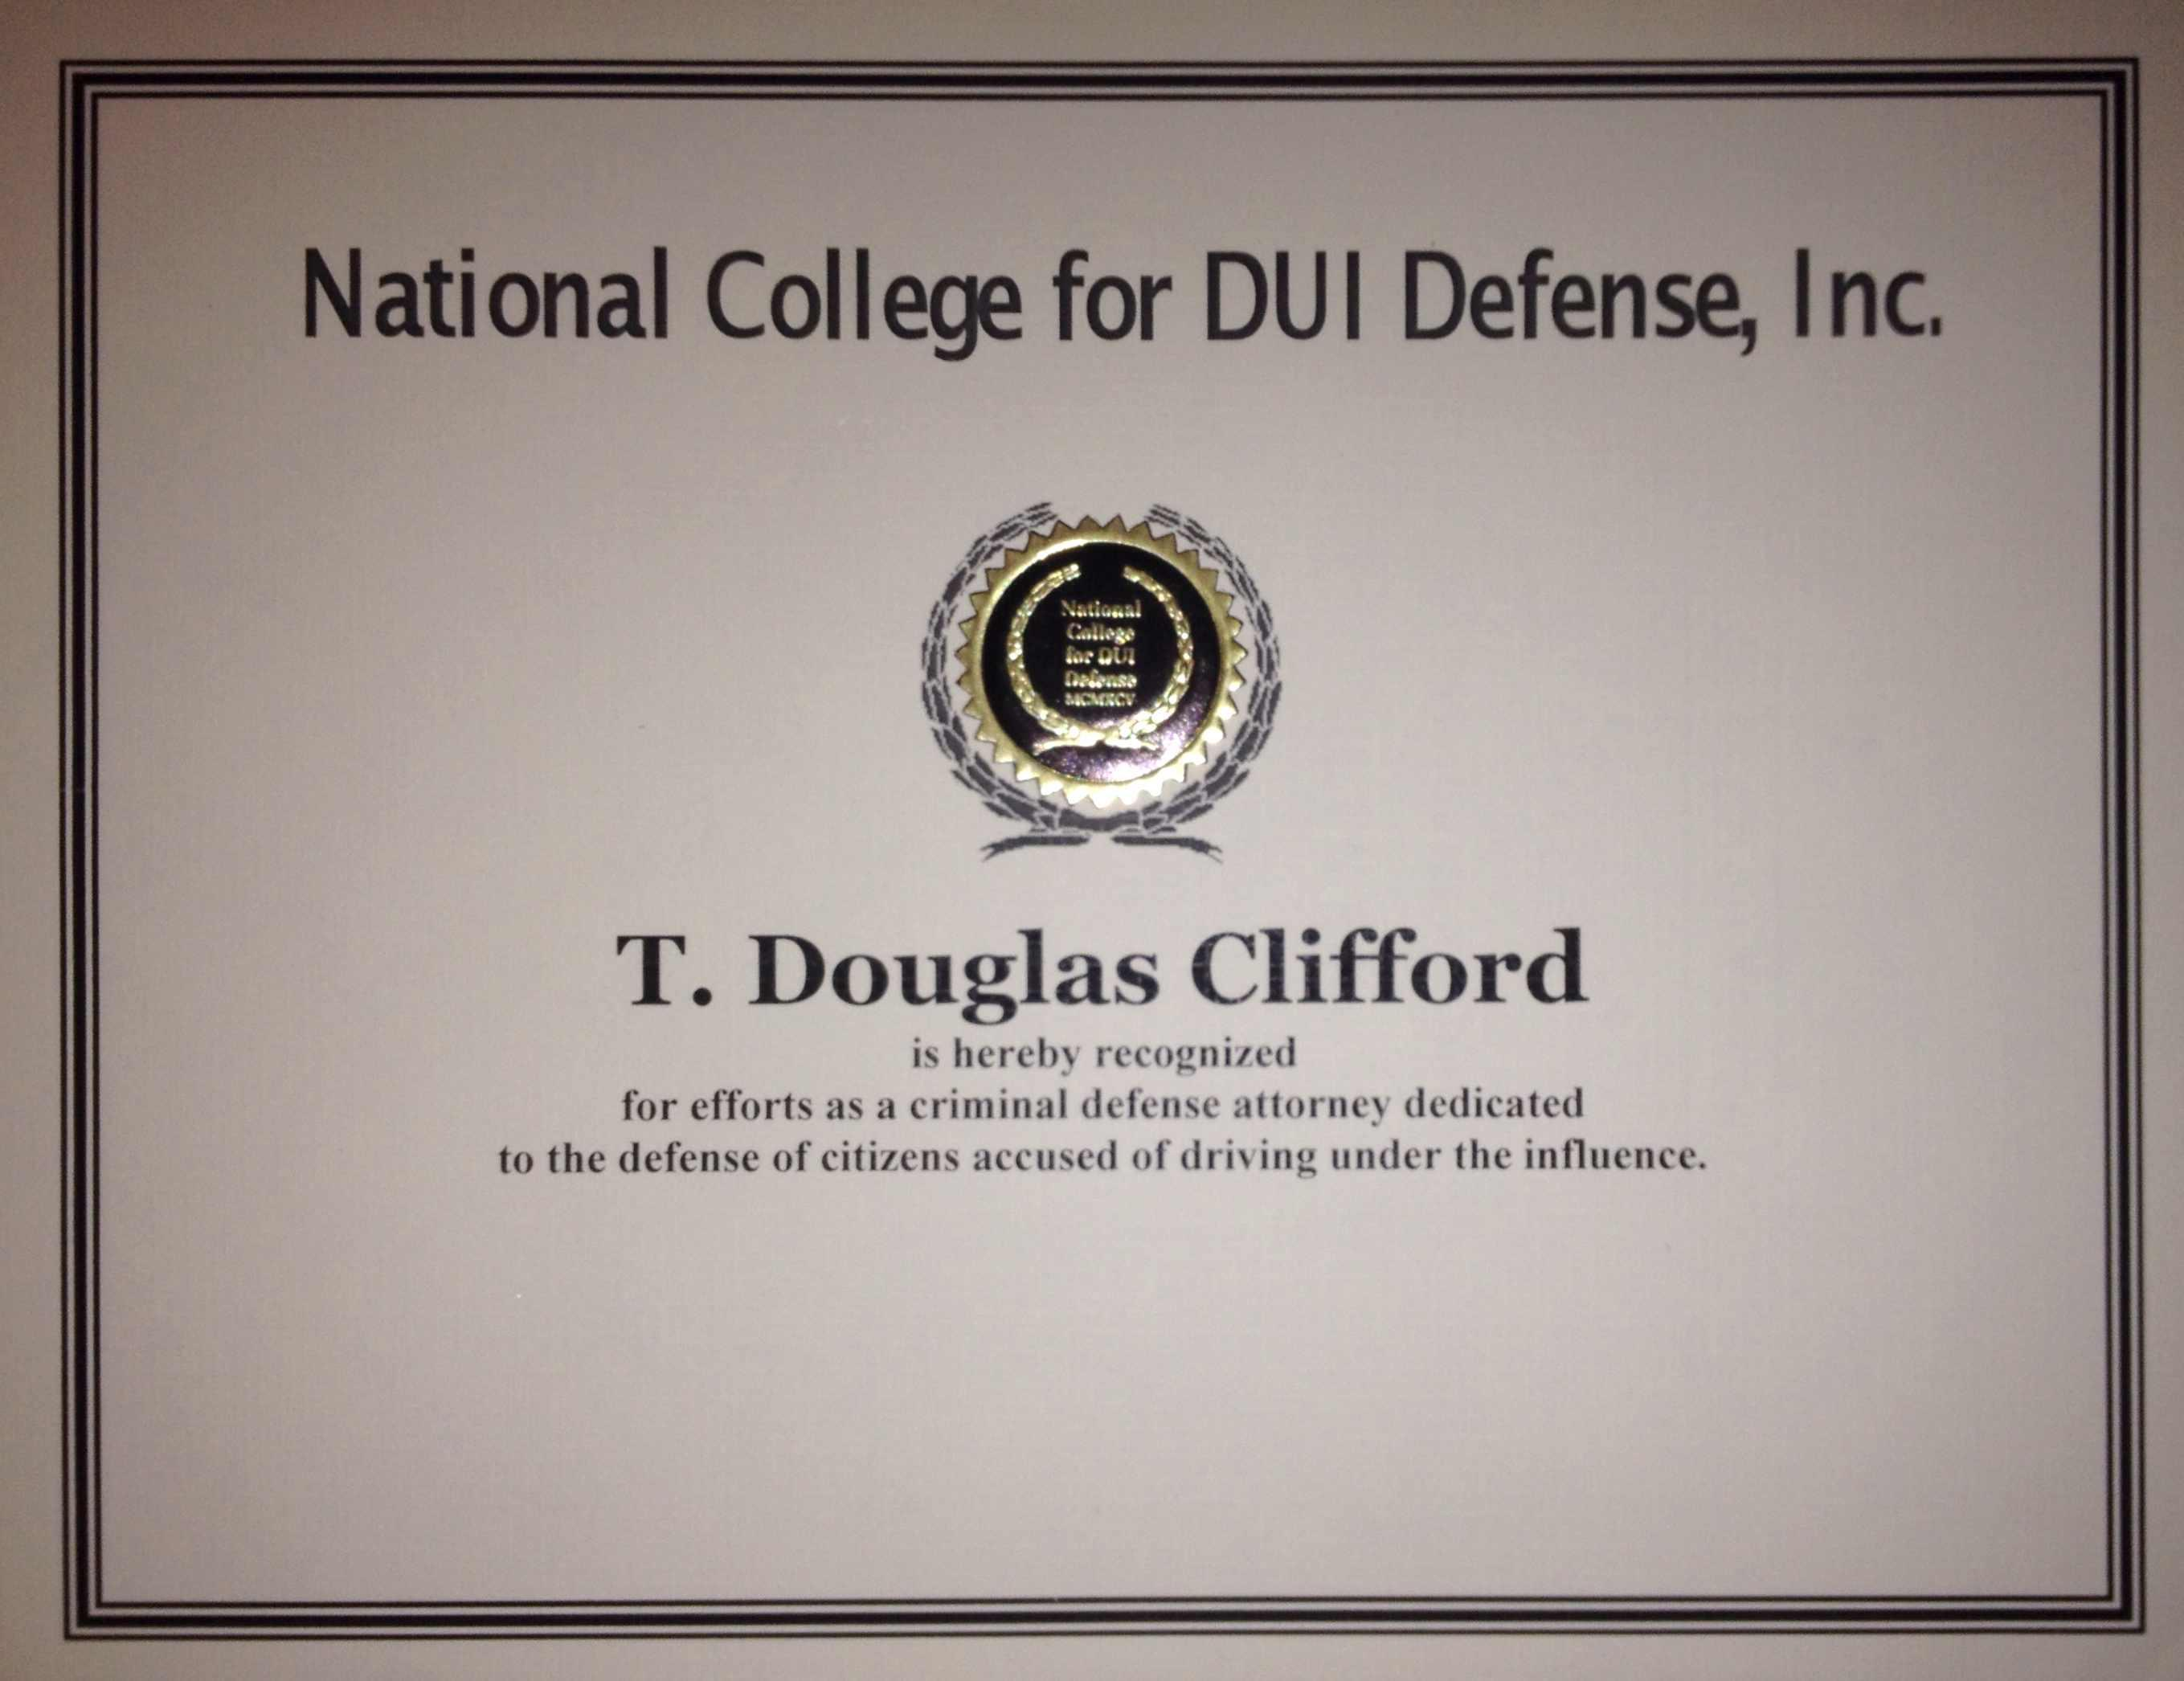 Law Offices of T. Douglas Clifford, LLC - ad image